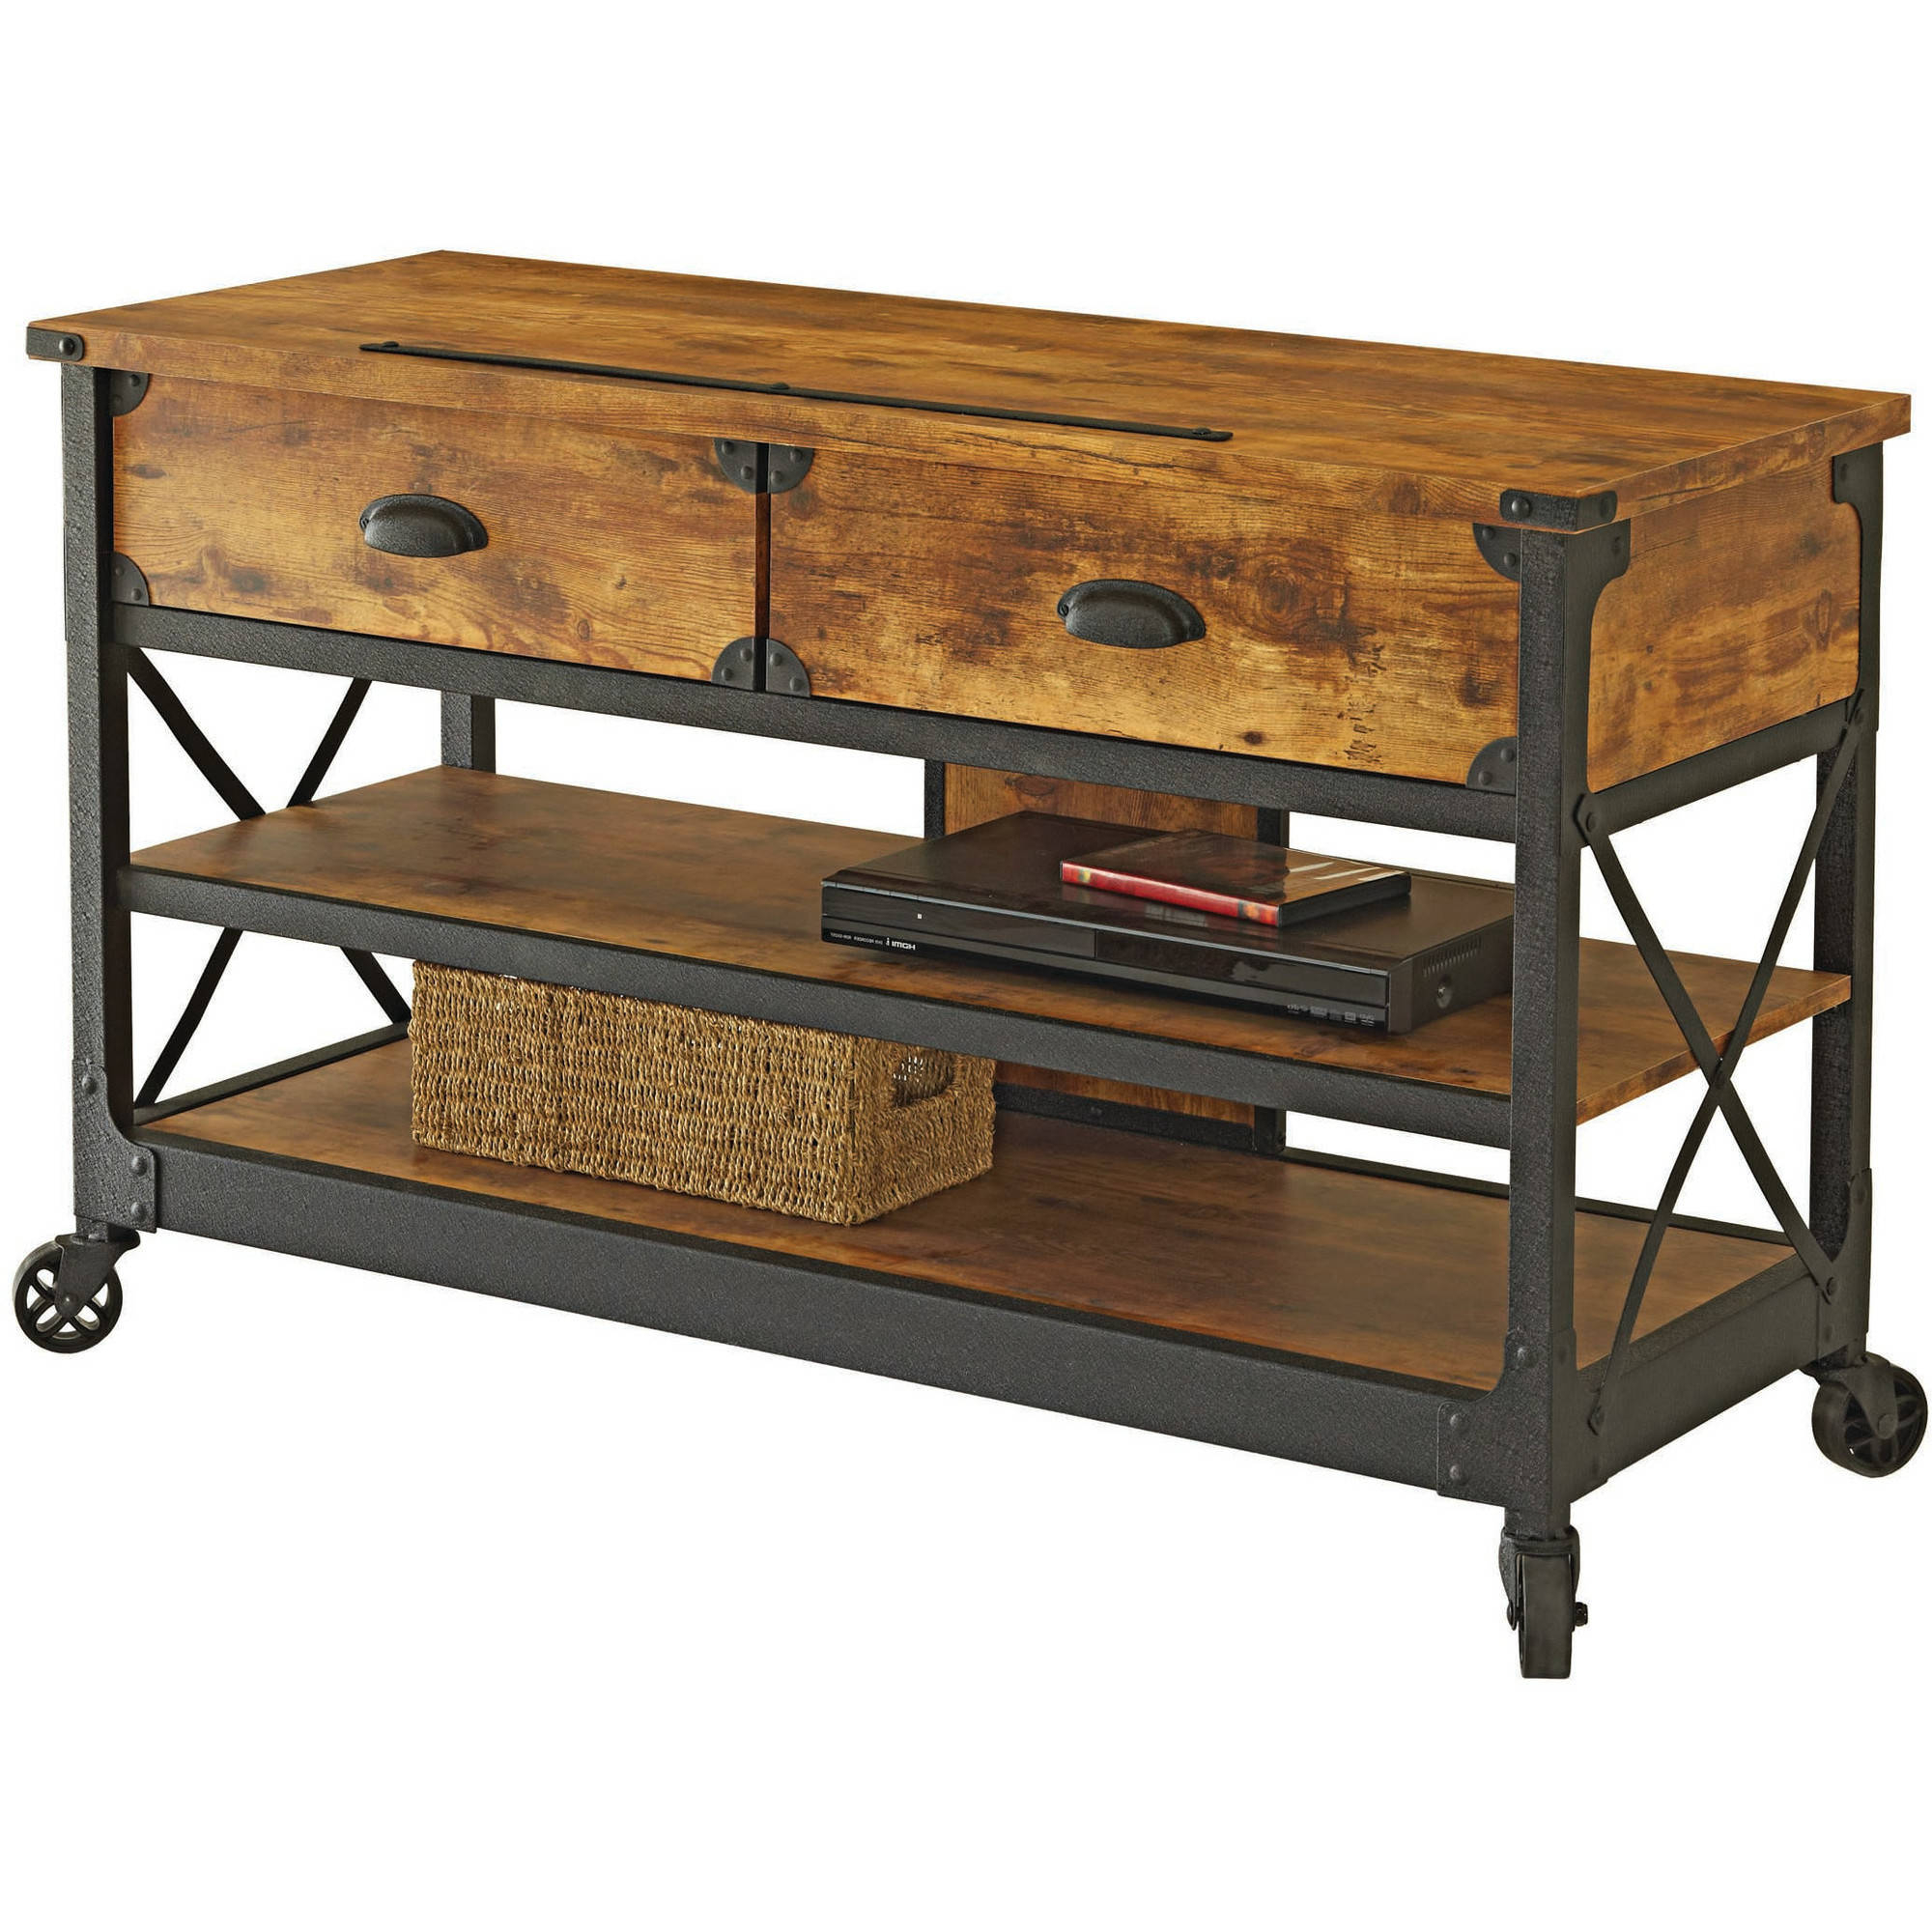 Most Popular Better Homes And Gardens Rustic Country Living Room Set – Walmart With Regard To Tv Stands With Storage Baskets (View 9 of 20)